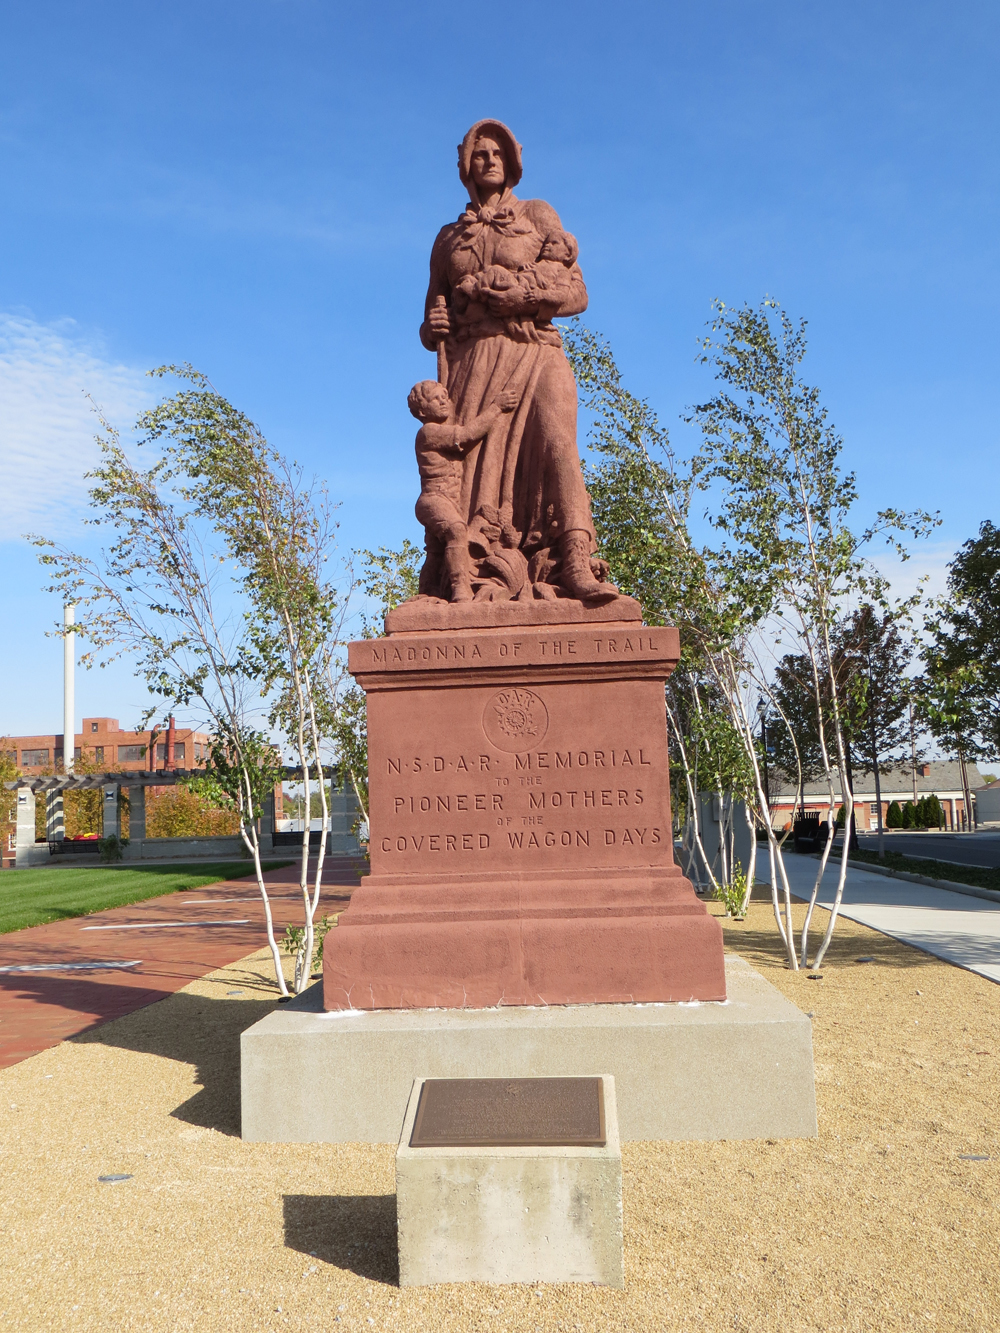 Madonna of the Trail statue in 3rd location (2011-present): National Road Commons, Springfield, Ohio, 2012